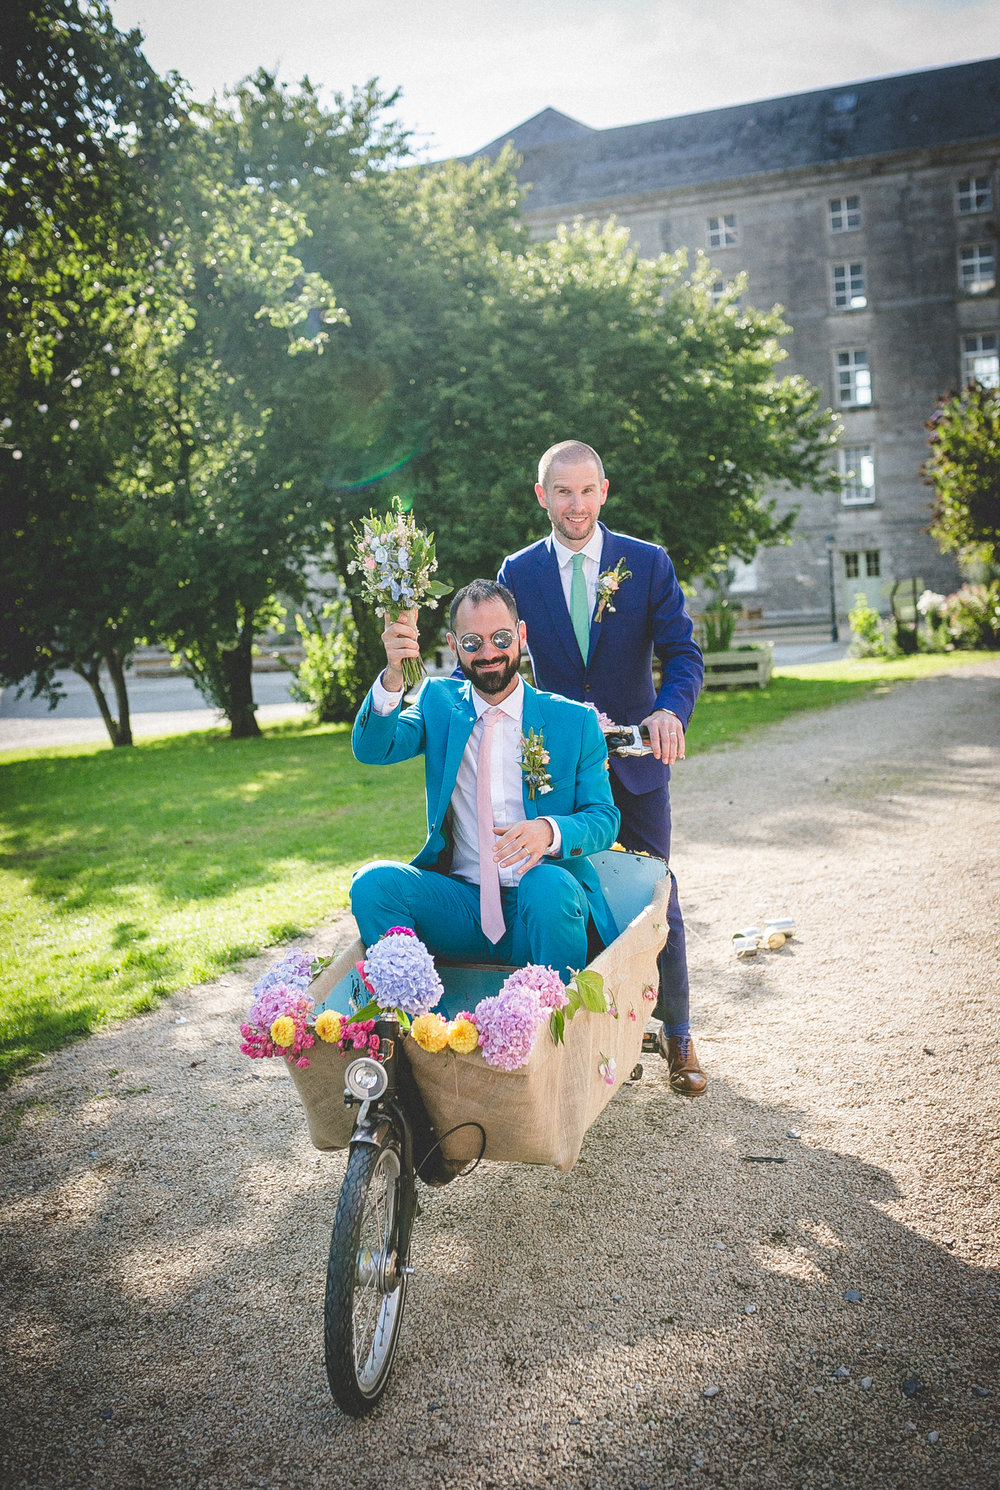 Gay weddings Ireland Millhouse-187.jpg